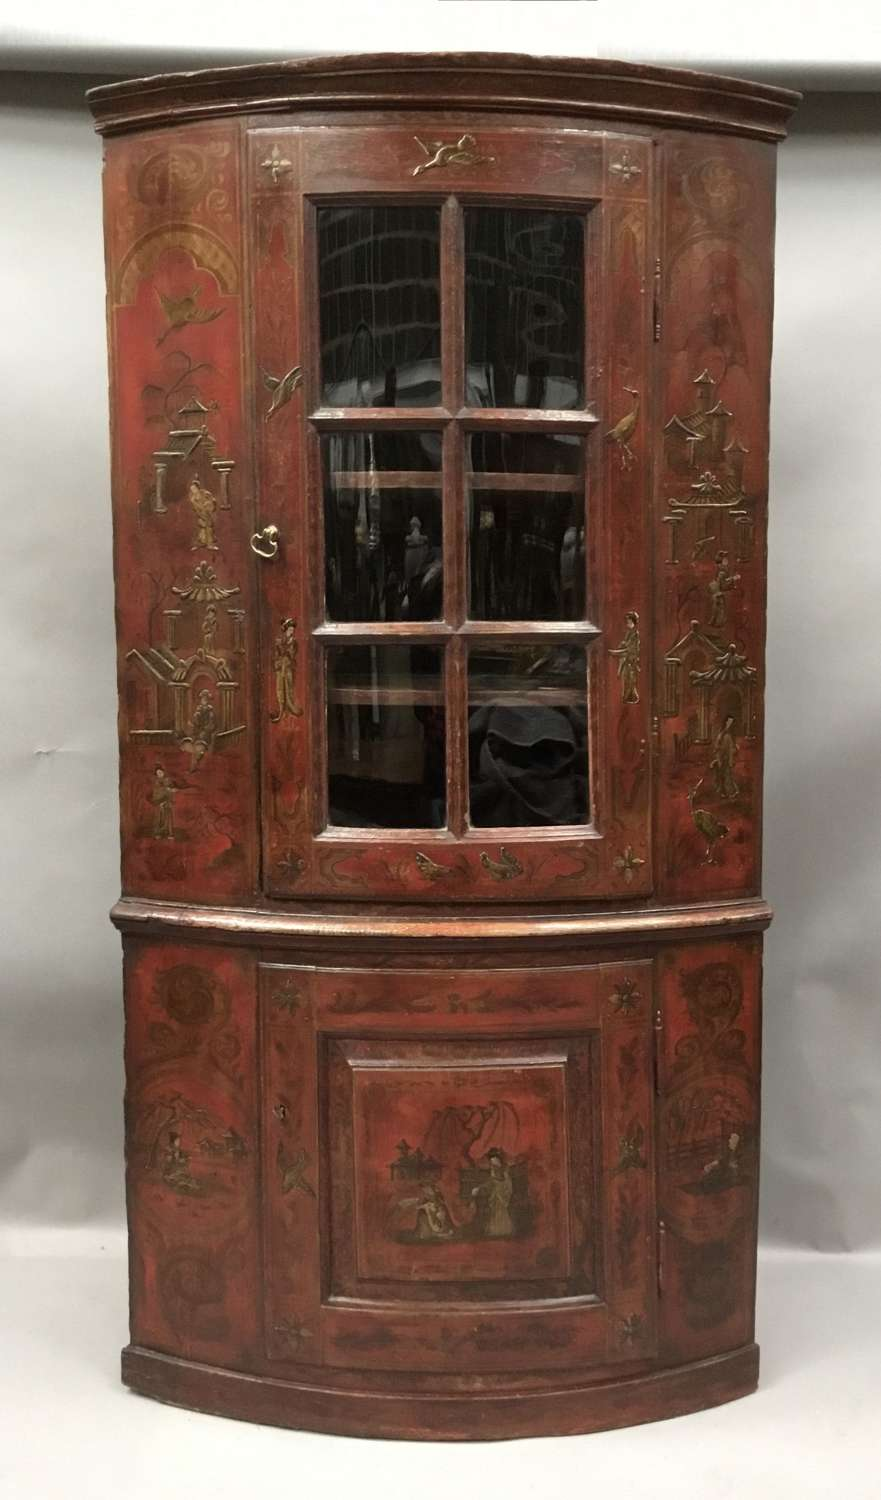 C18th red lacquered Chinoiserie standing corner cupboard